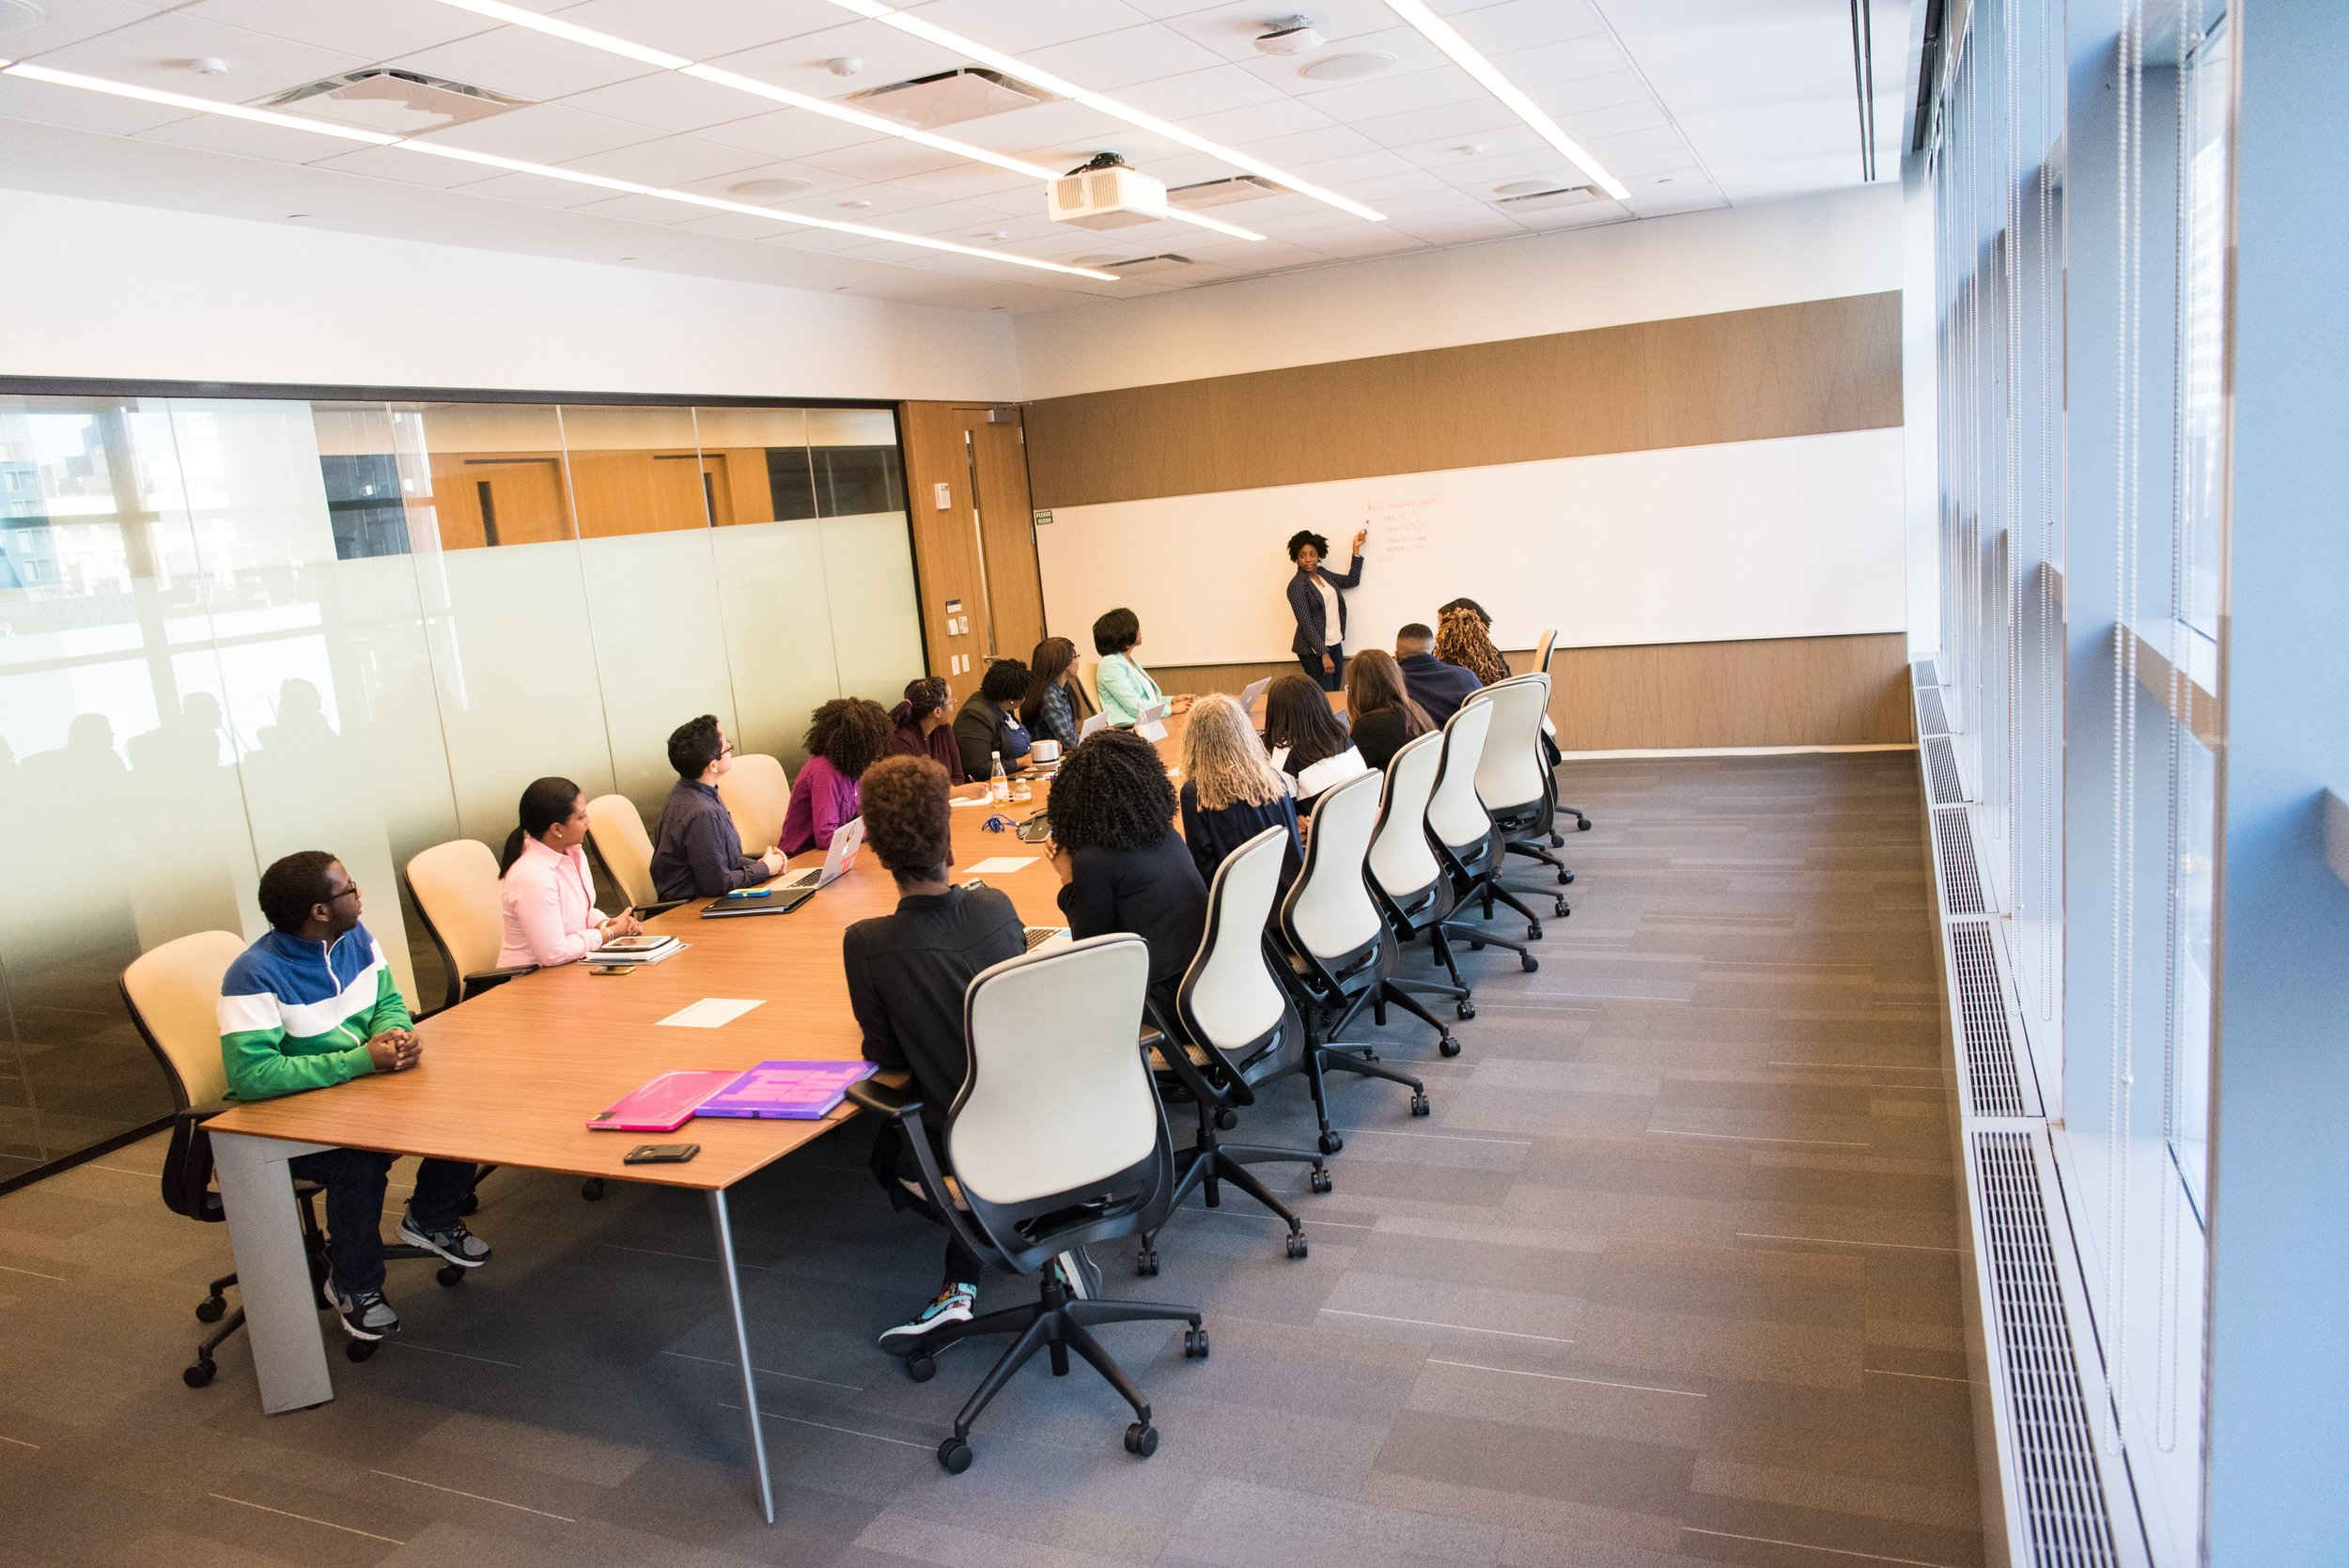 chairs-conference-room-digital-nomad-1181394.jpg